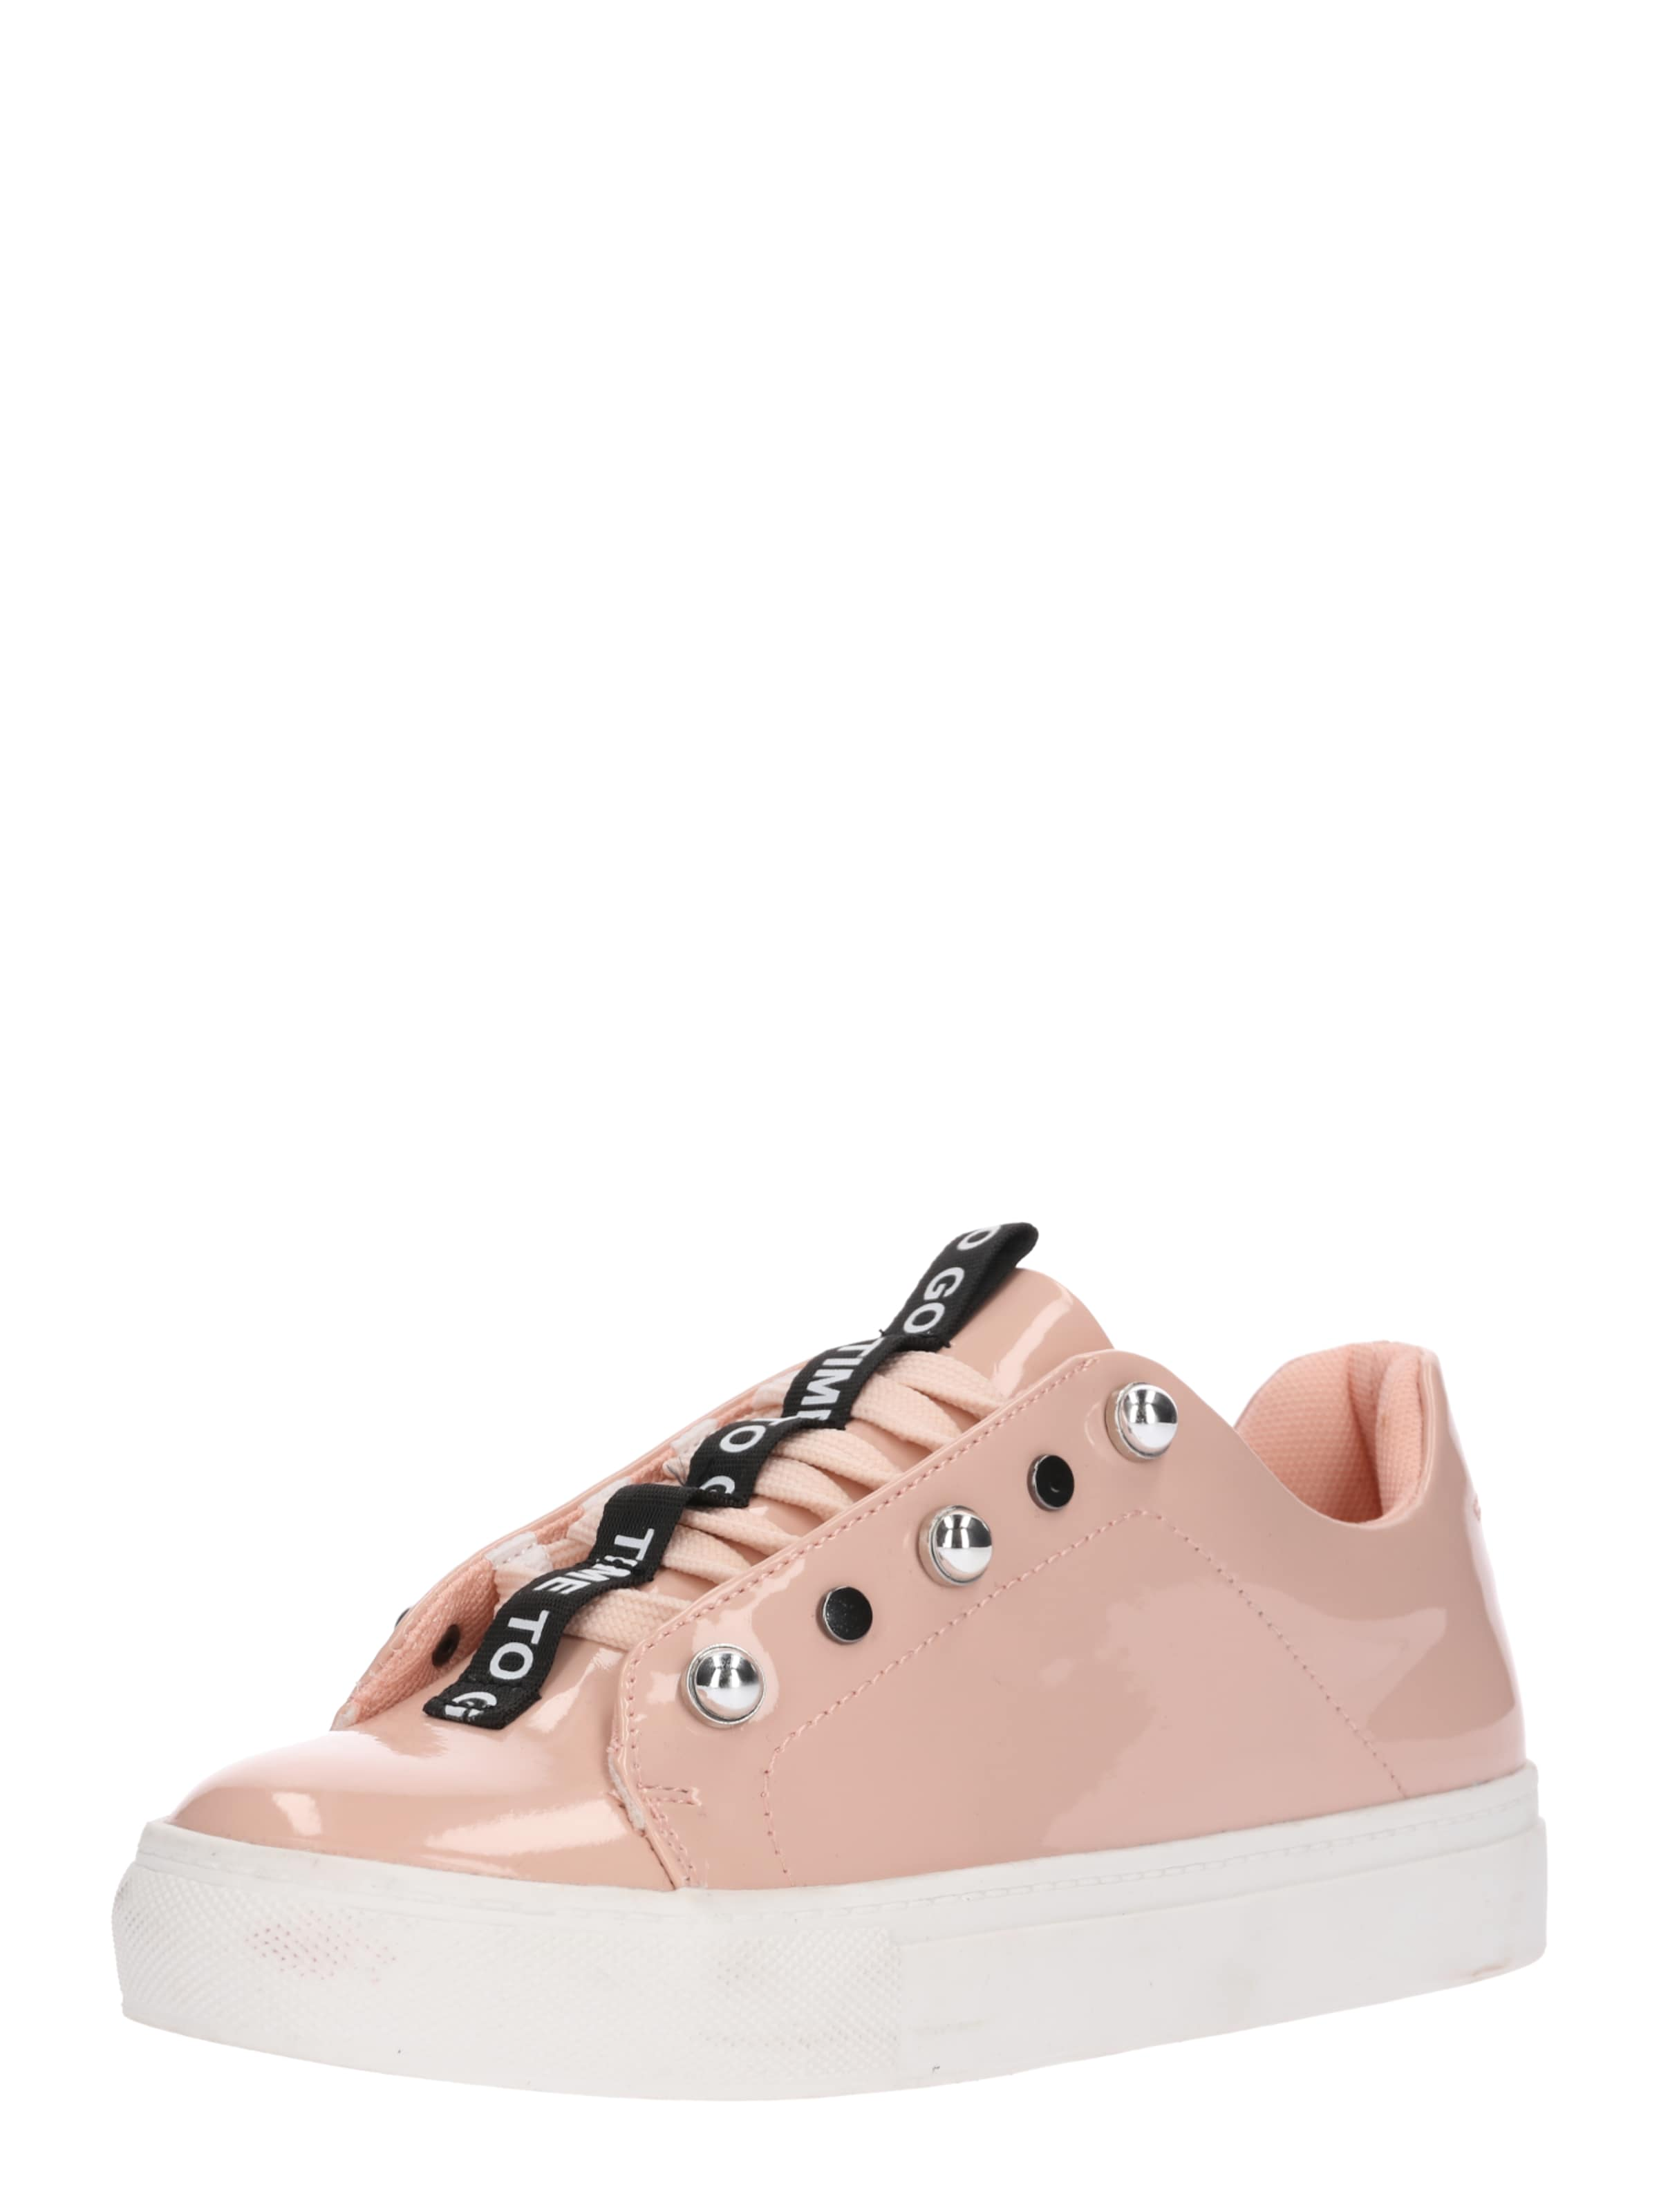 About 'ella' Sneaker In You Rosa Pw8nO0k